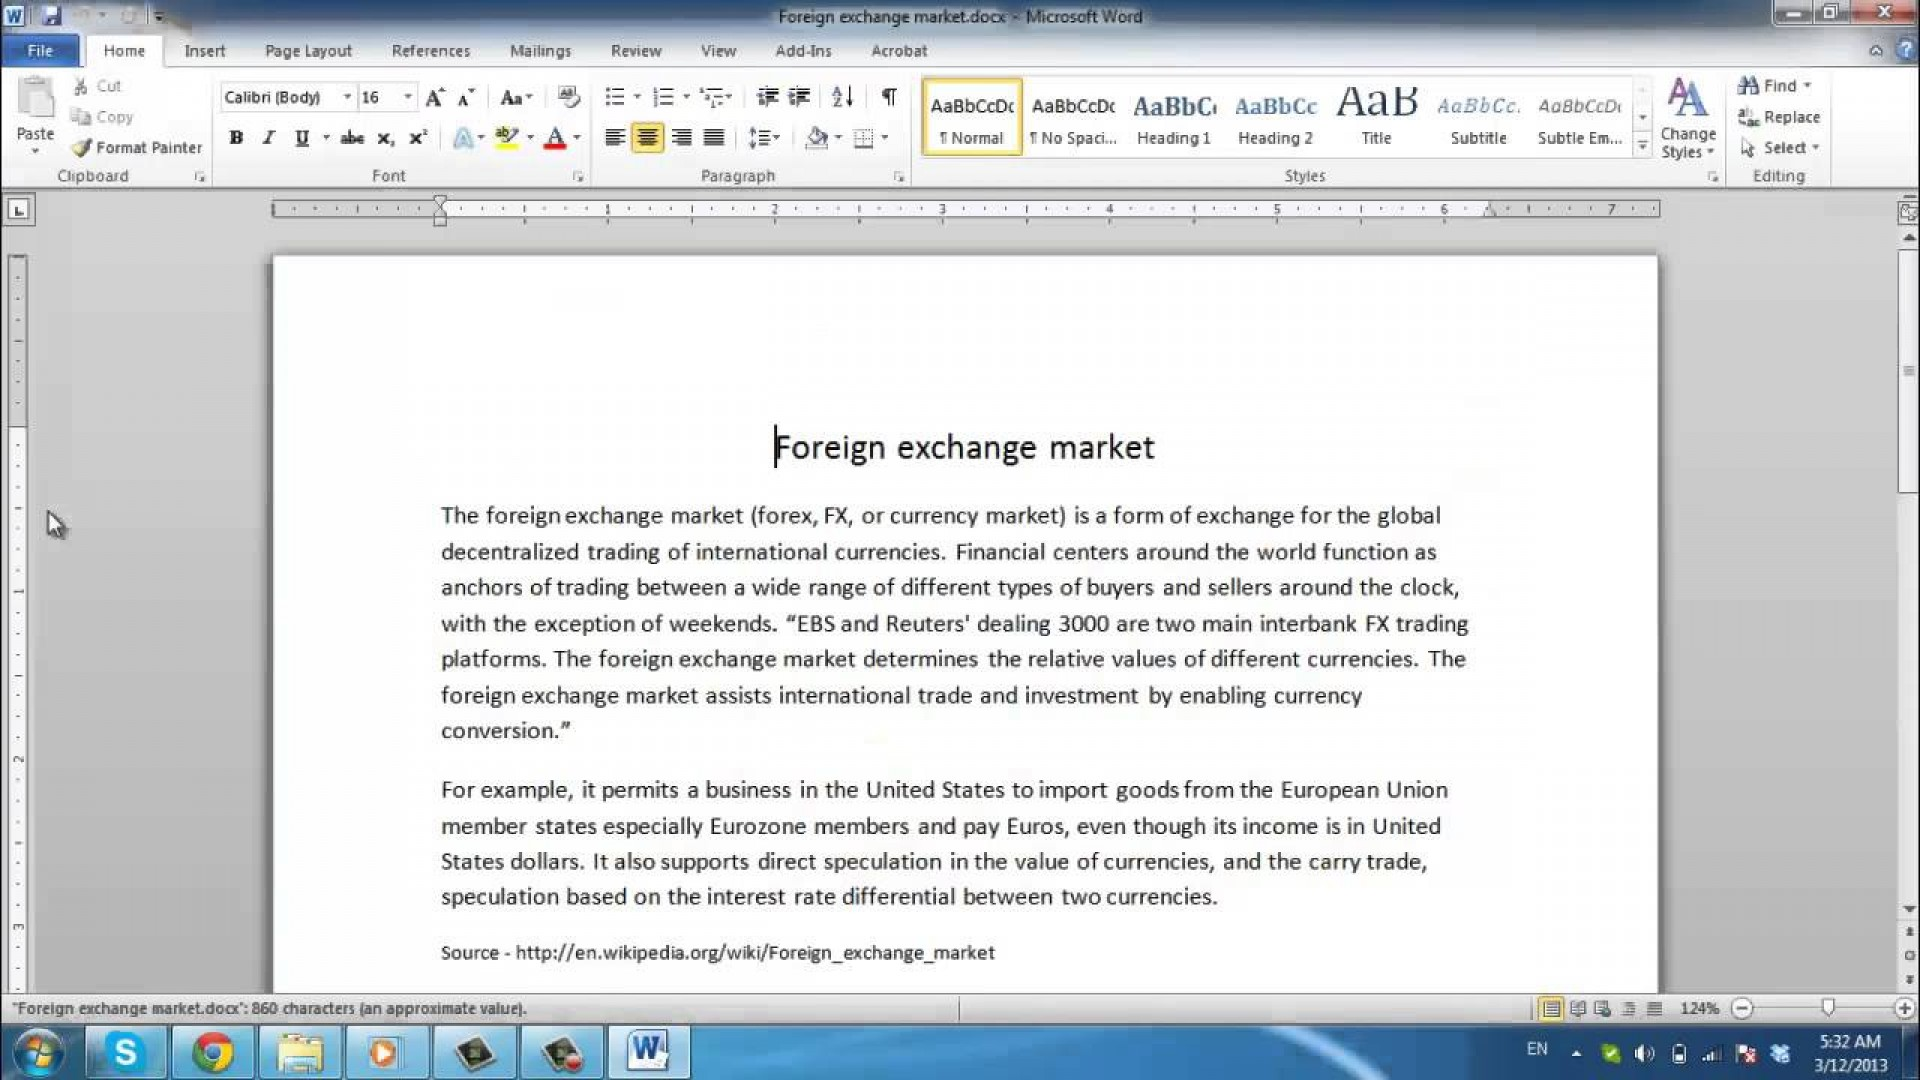 004 How To Put Long Quote In An Essay Maxresdefault Unique A Large Mla Harvard 1920